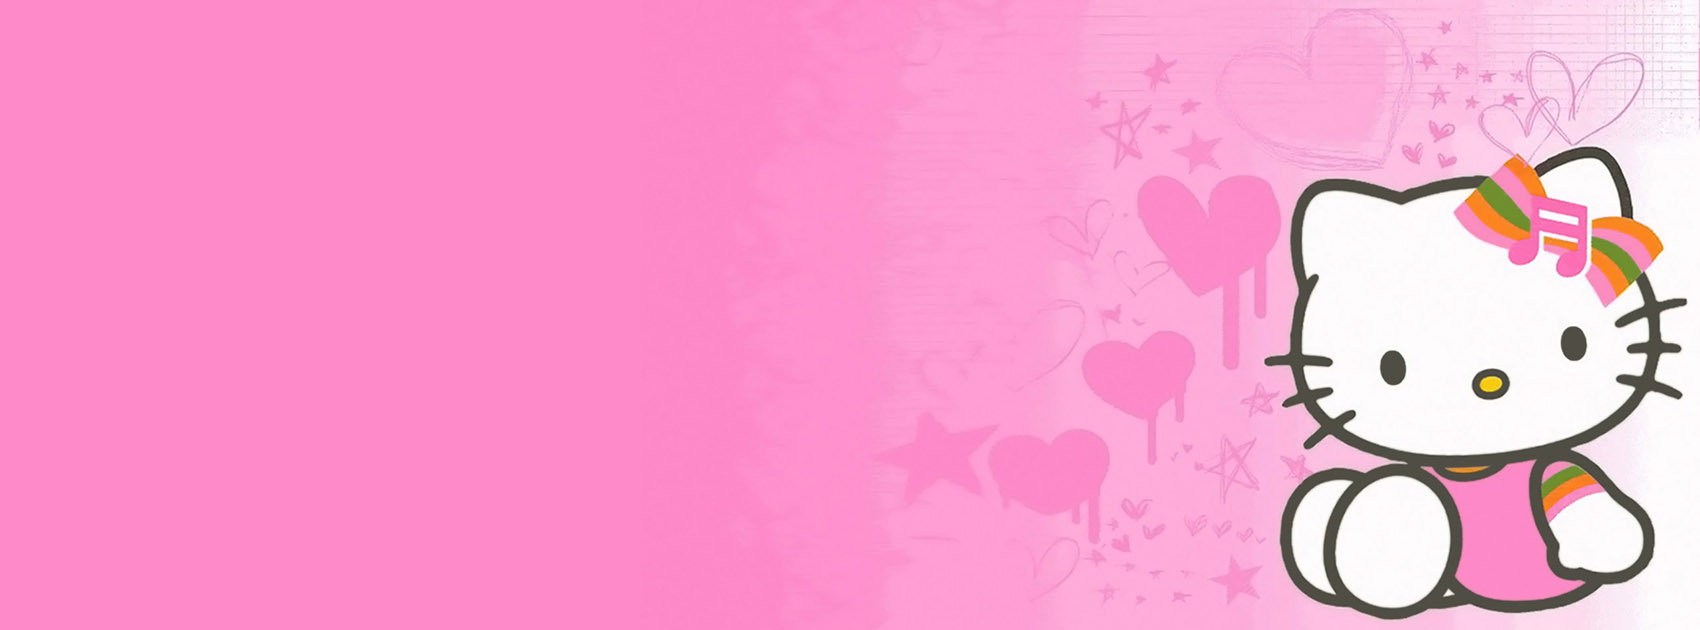 Cute Sanrio Wallpapers Hello Kitty Valentine Facebook Timeline Cover Photo Jpg